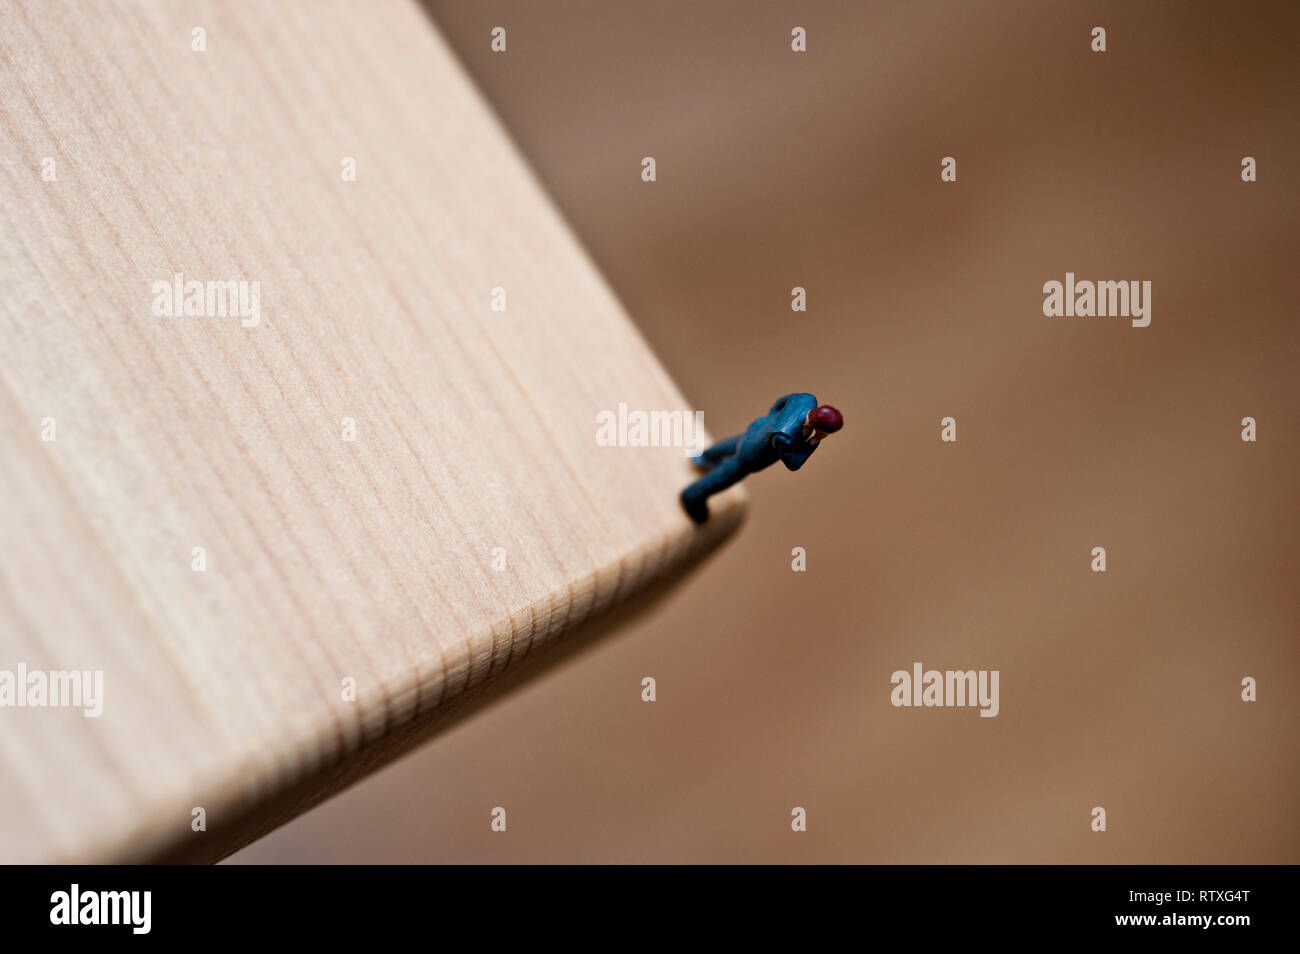 miniature figurine on the corner of a table, concept for man on the edge - Stock Image